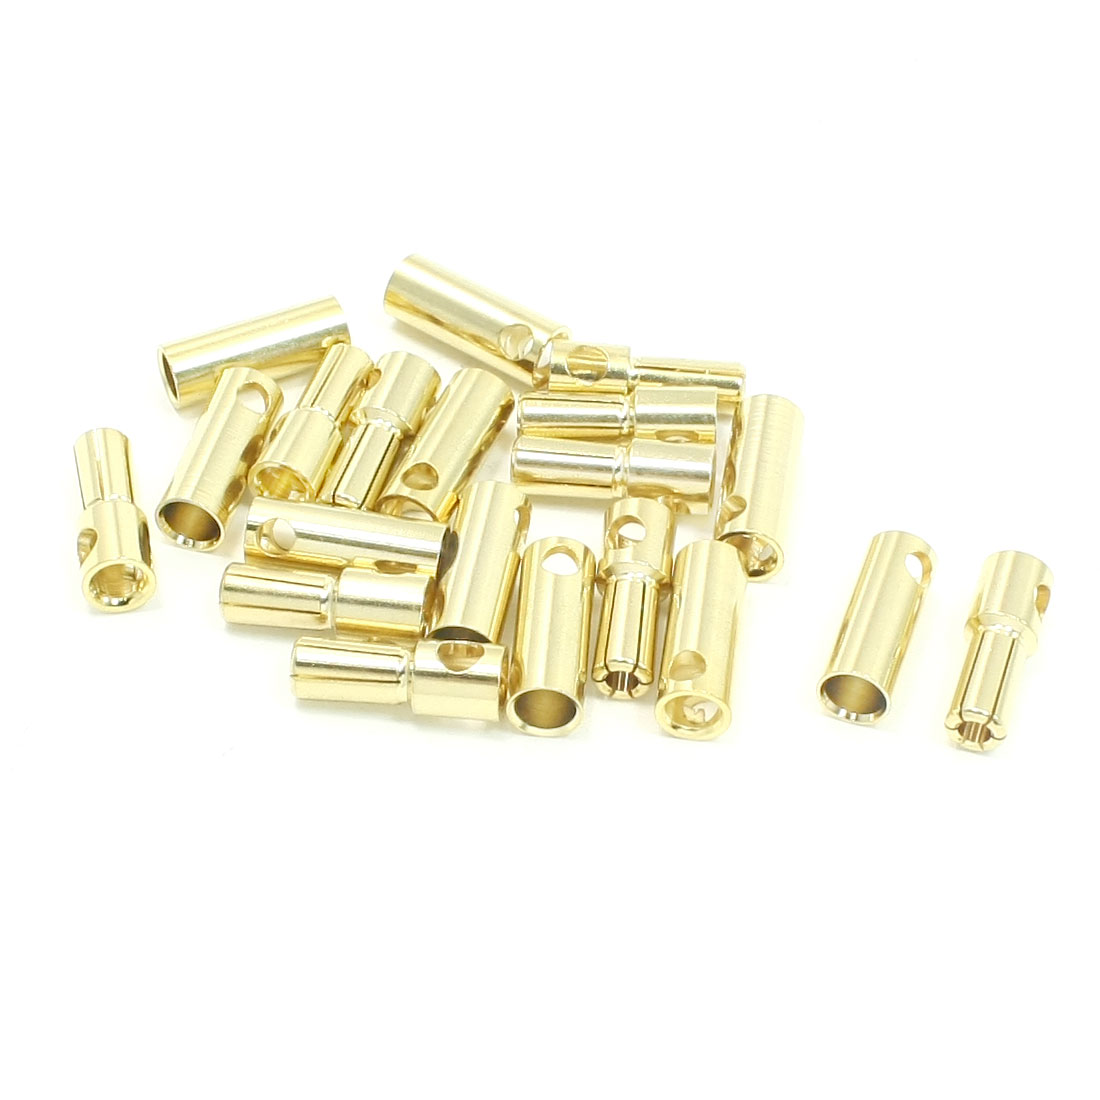 10 Pairs Gold Tone Metal 5.5mm Dia Banana Cone Plug Connectors